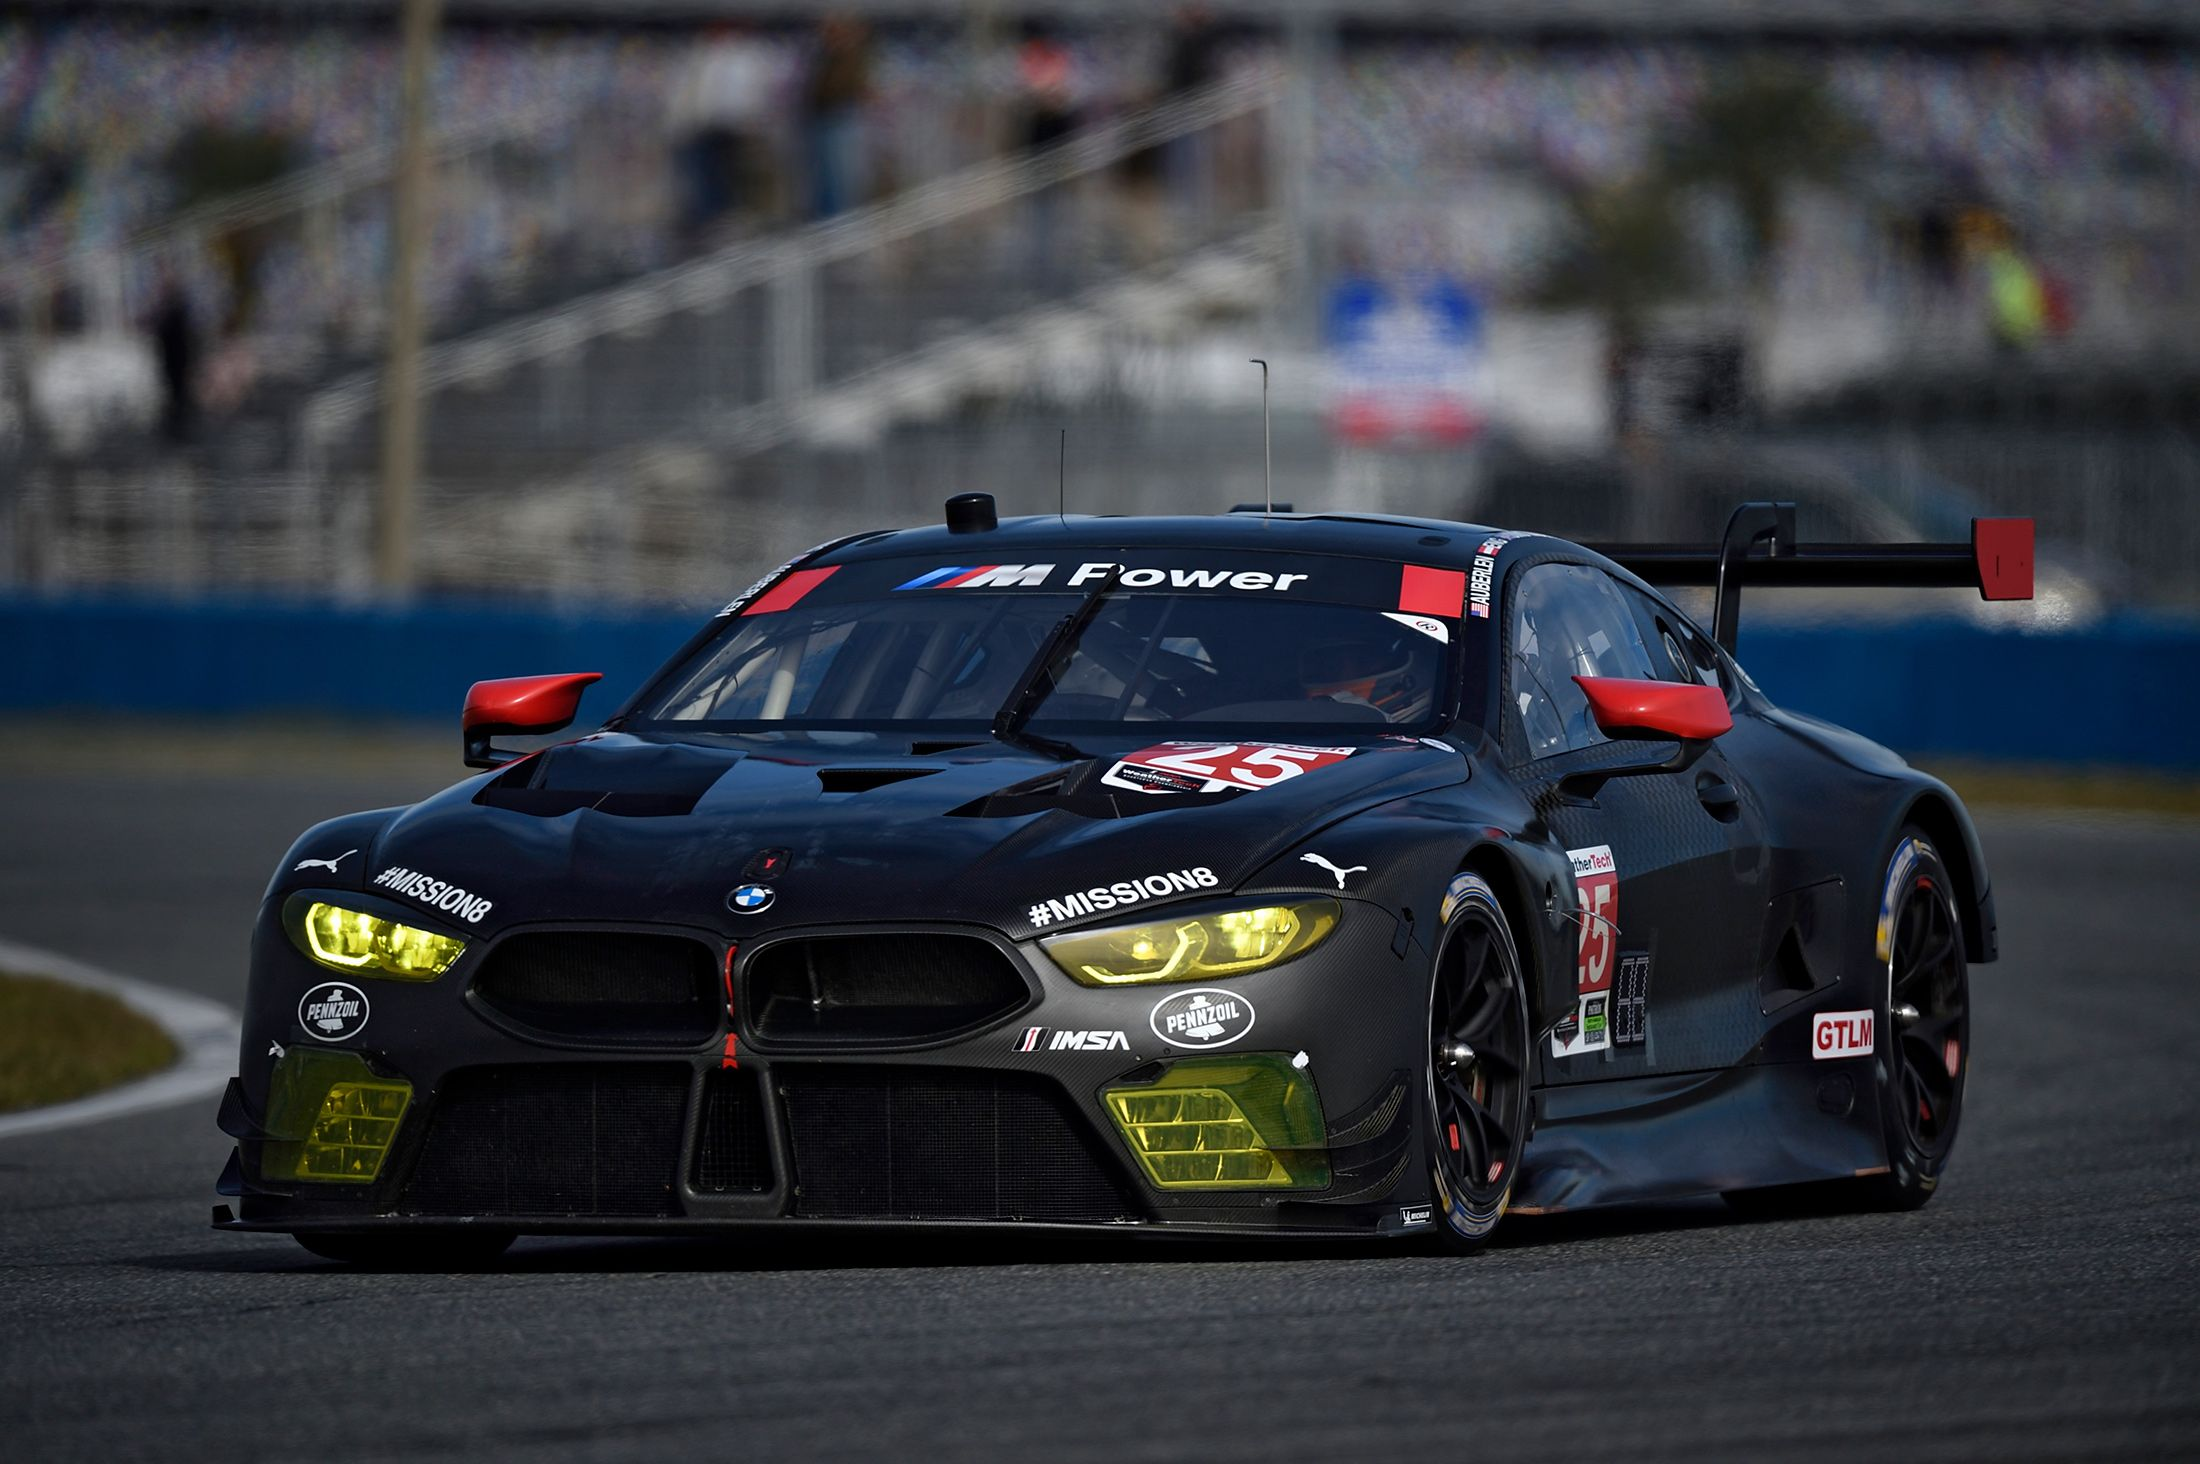 New Bmw M8 Gte Makes Race Debut At The Rolex 24 At Daytona